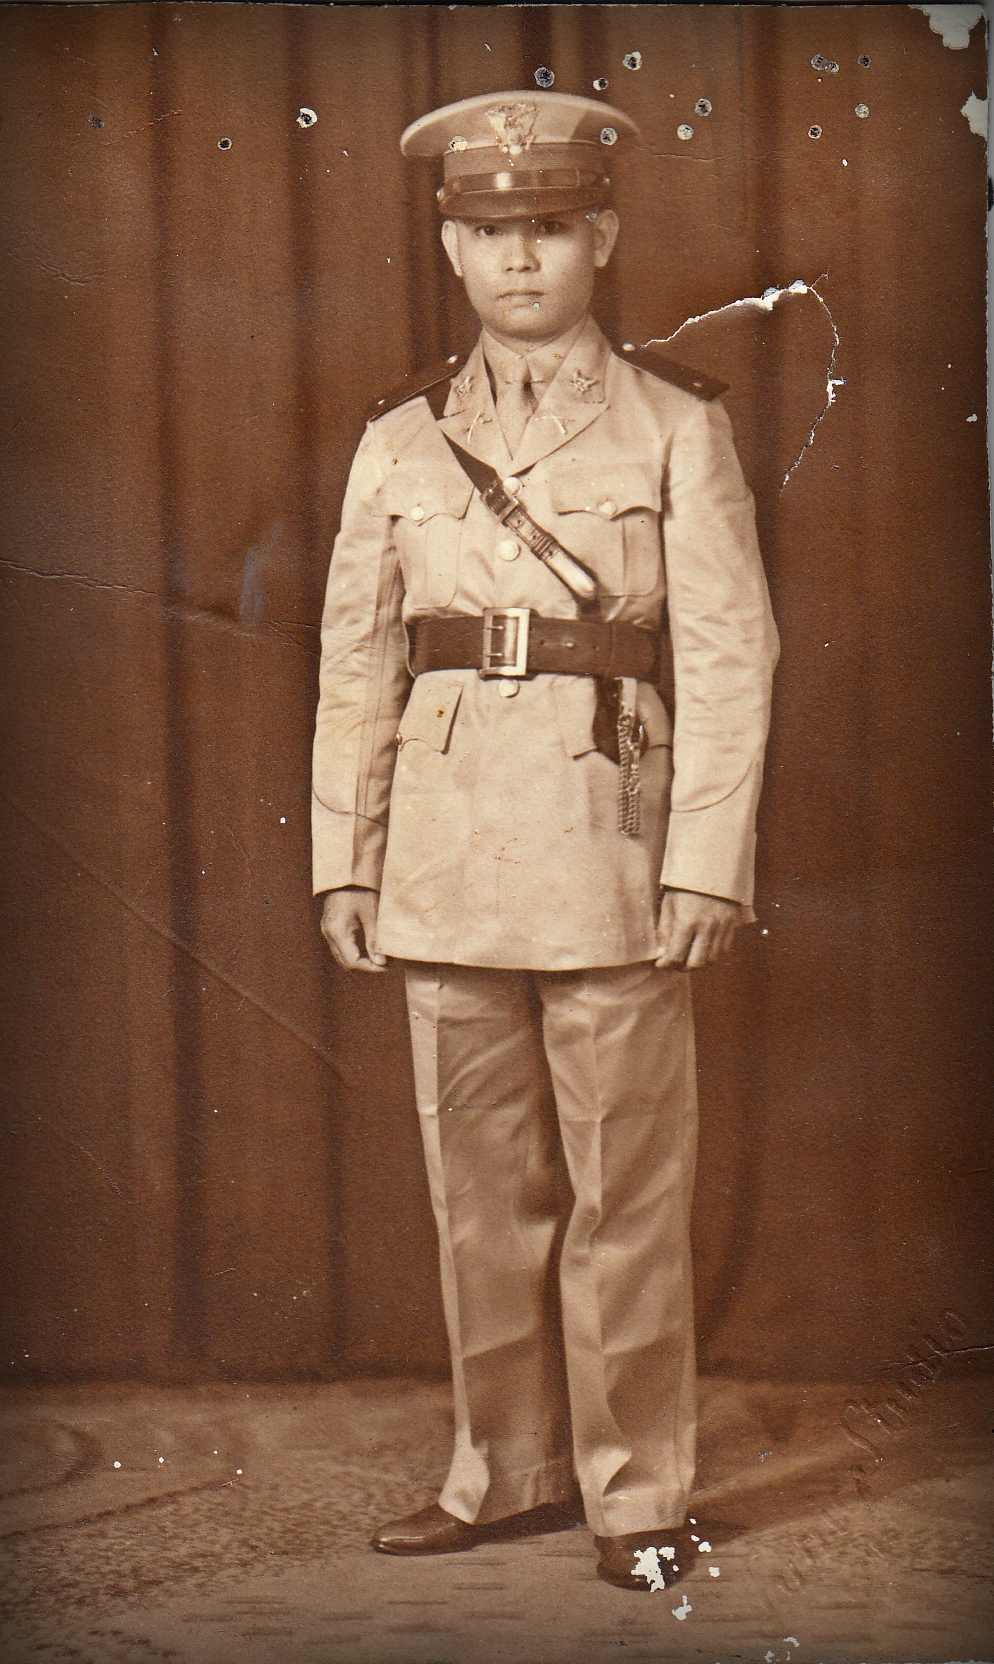 Tonio on active duty during the second world war.